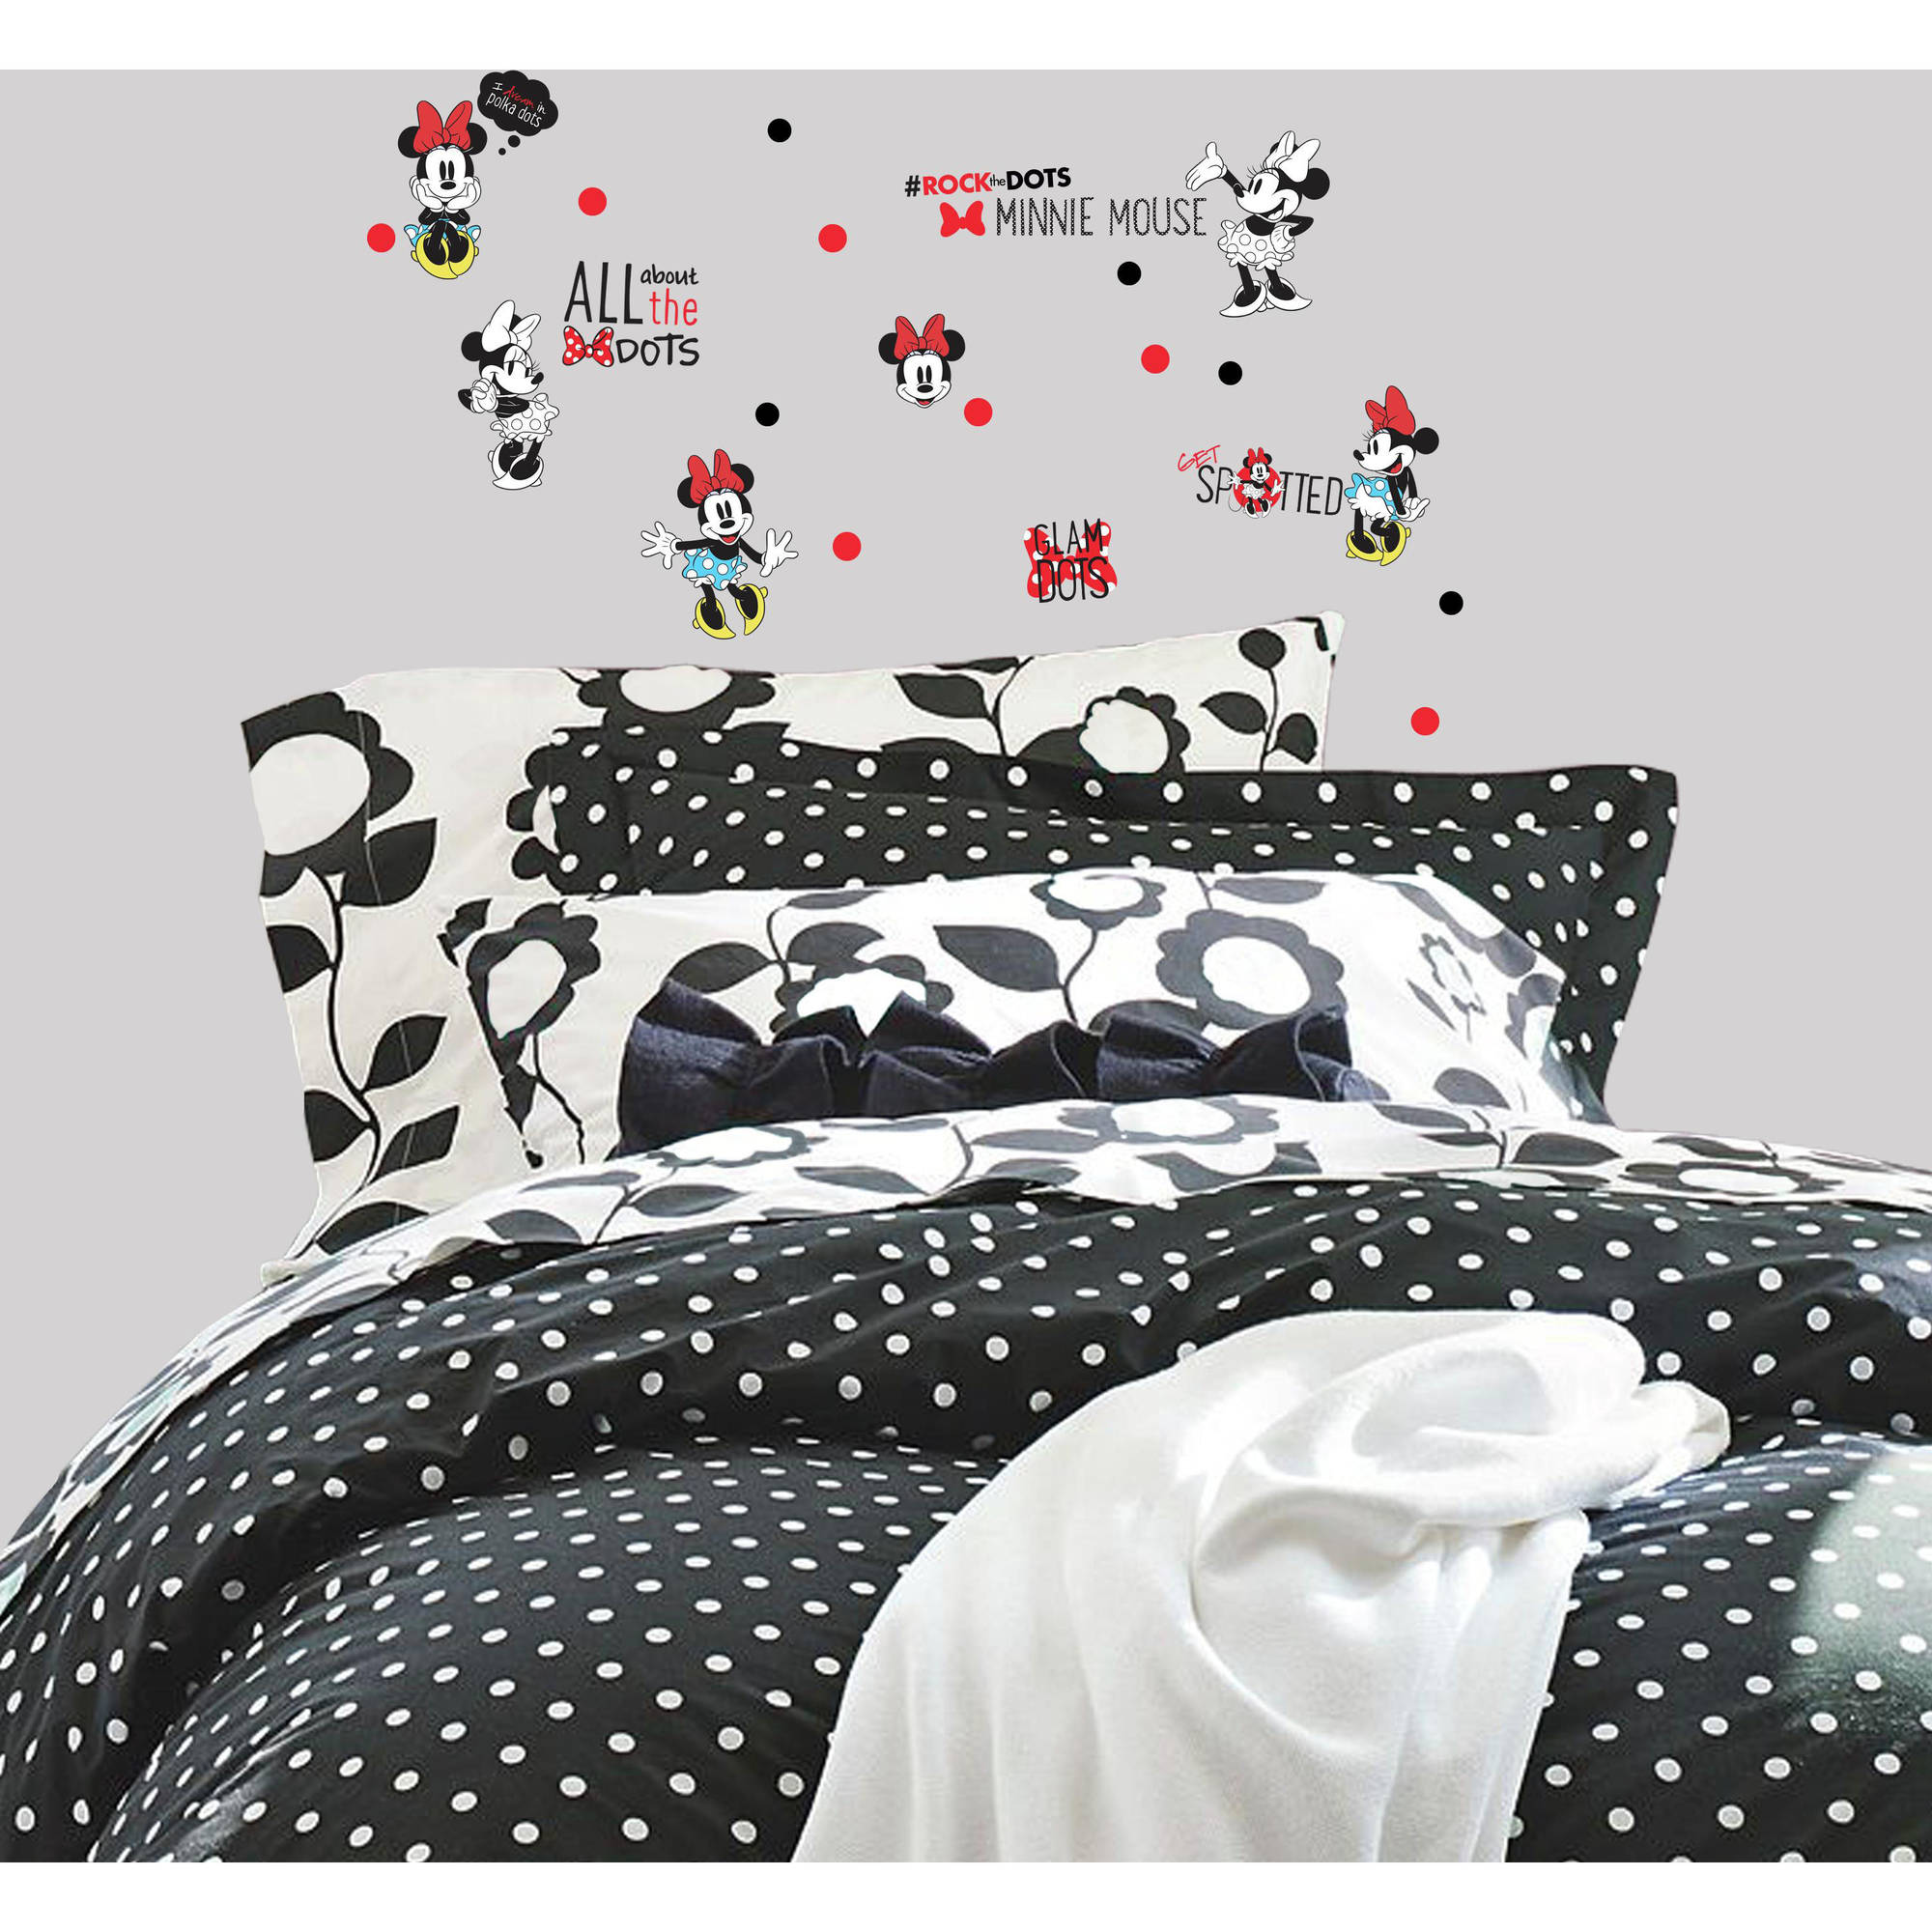 Roommates Minnie Rocks The Dots Peel and Stick Wall Decals